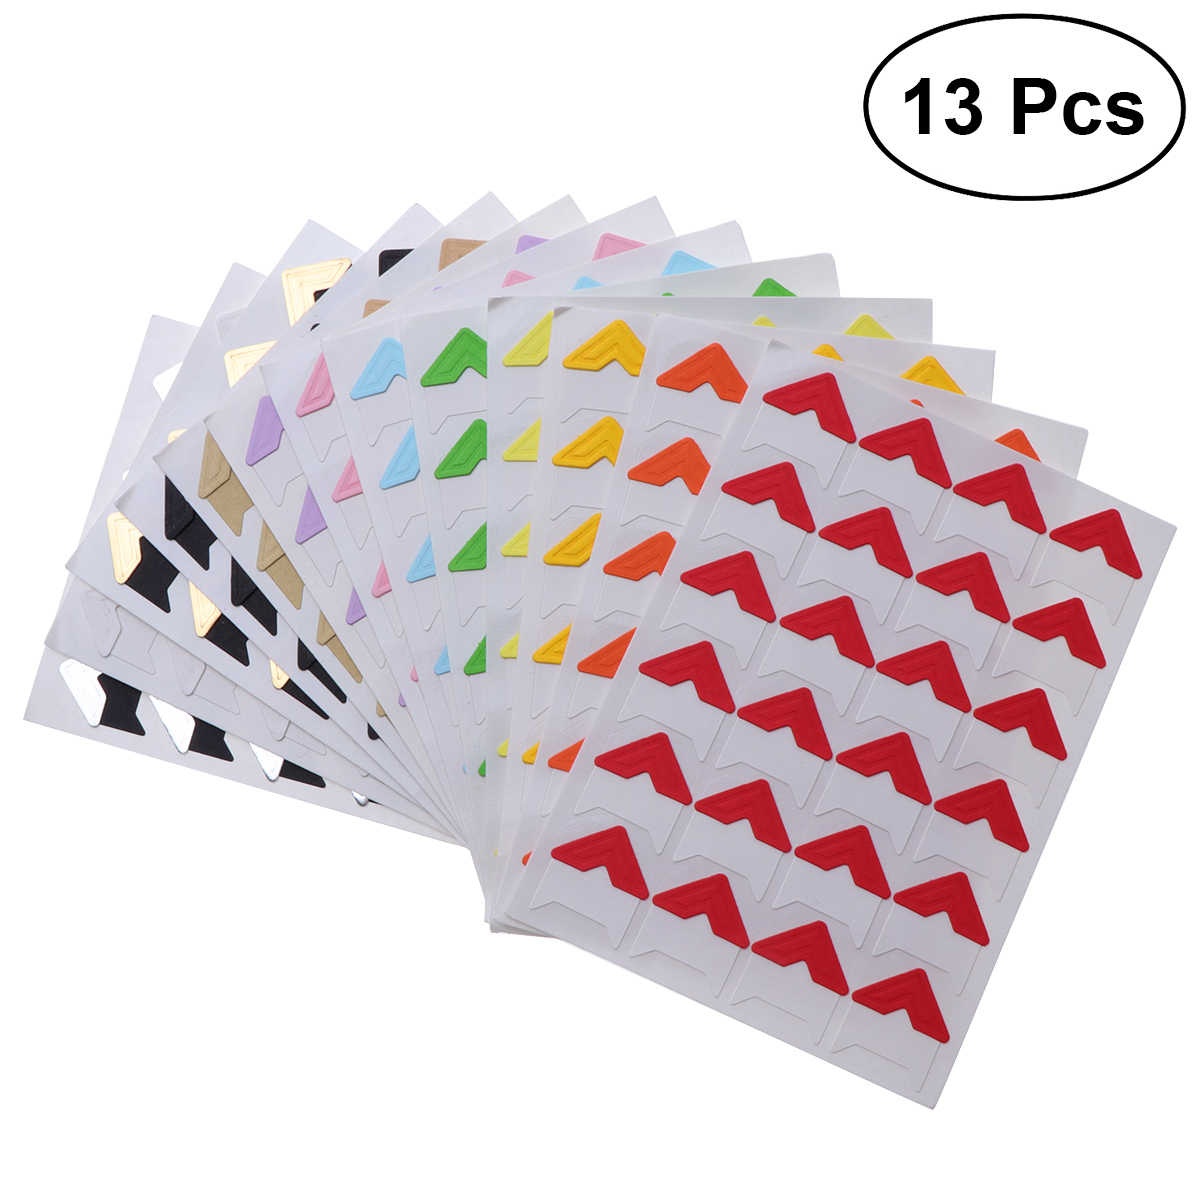 13 Sheets Photo Corner Stickers for Scrapbook Album Diary DIY Corner Protection Paster (Multicolor)